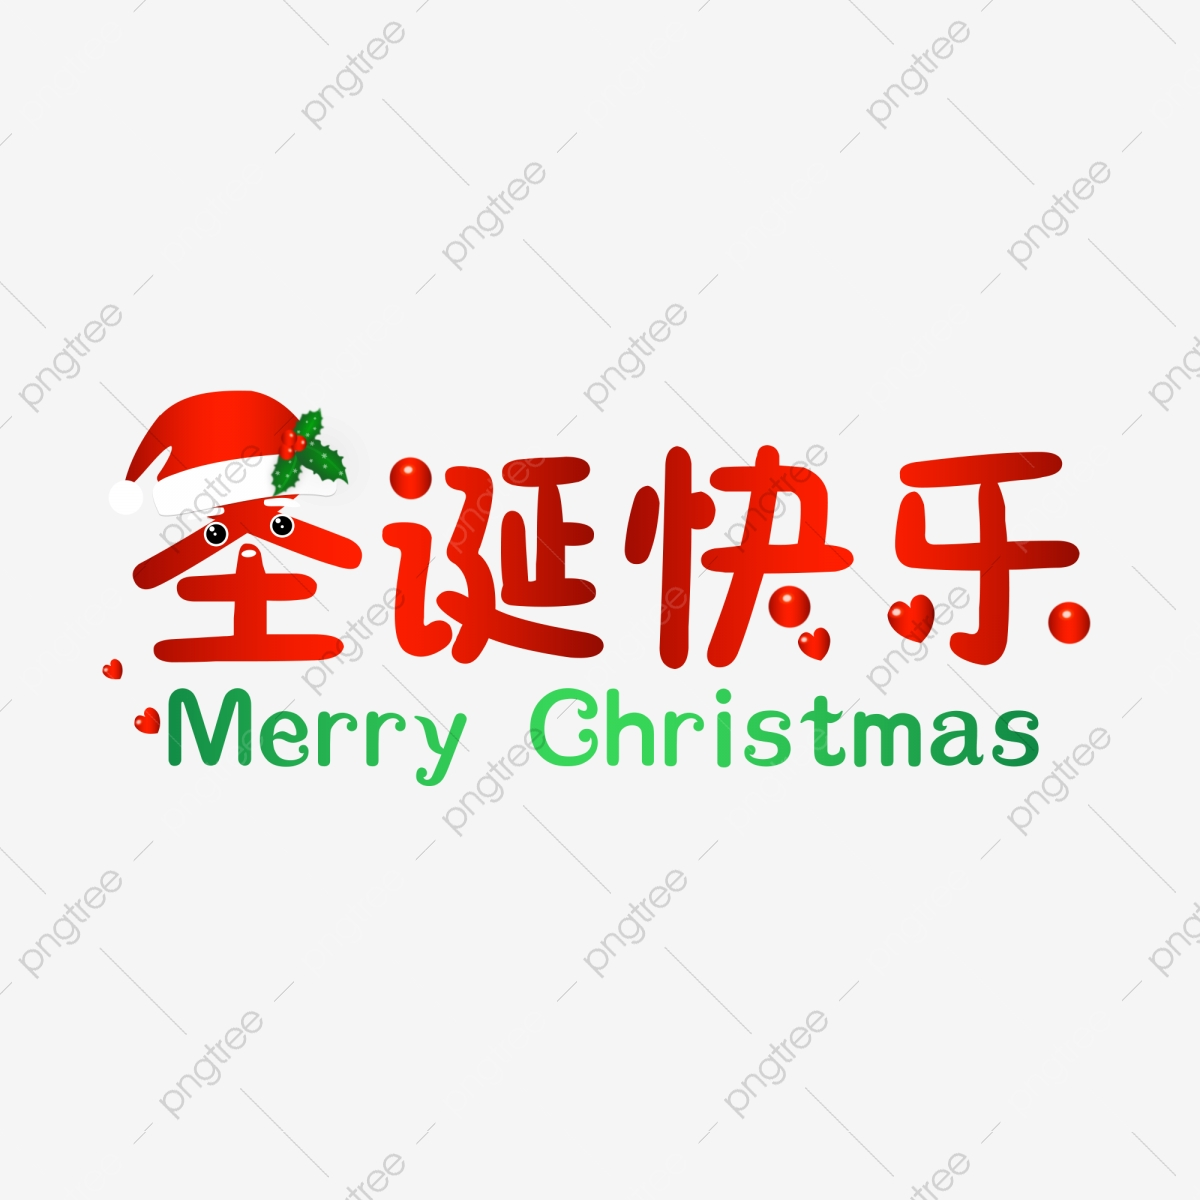 Christmas Theme Wording Merry Christmas Wordart Merry